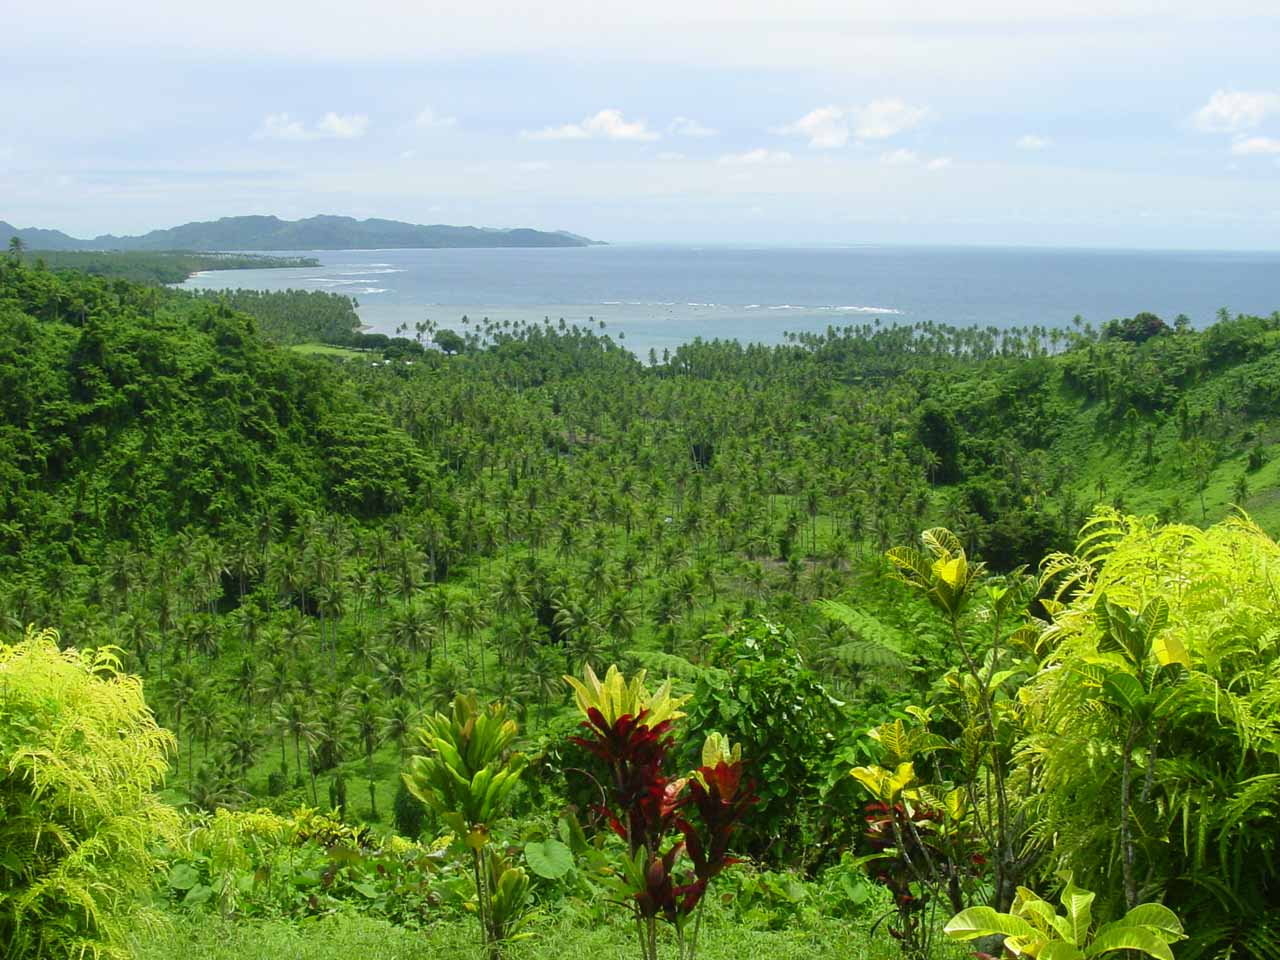 We got this gorgeous view towards the Taveuni eastern coast from somewhere between the Lower and Middle Tavoro Falls